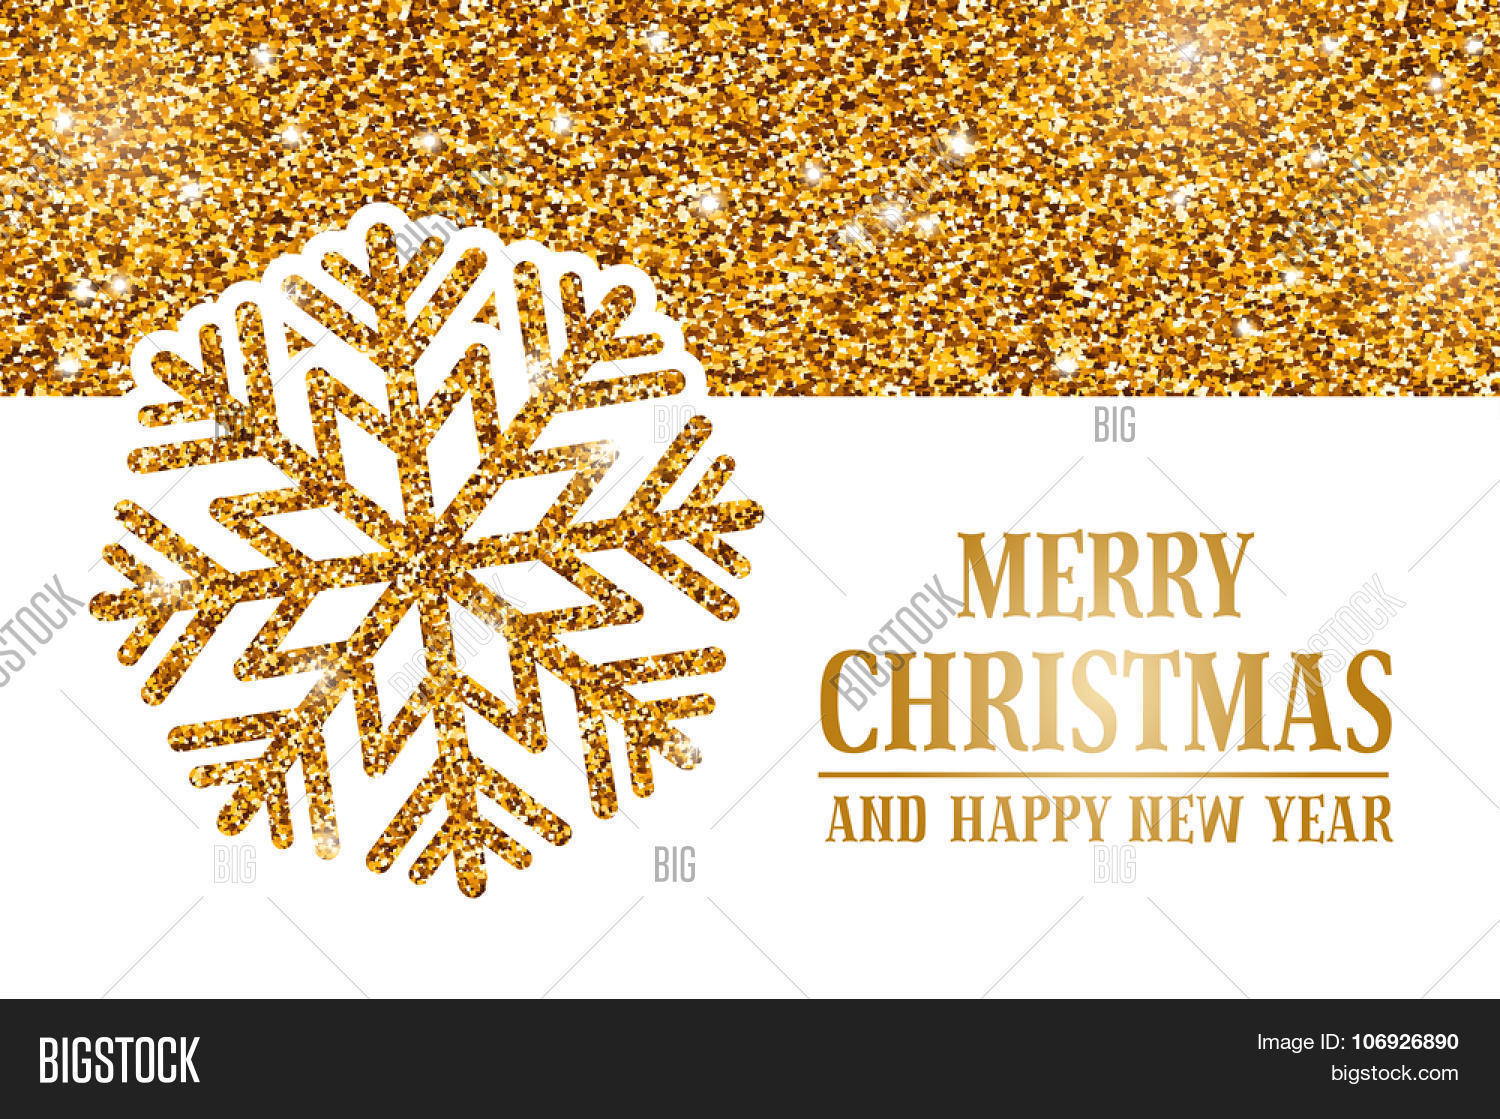 luxury christmas and new year greeting card with golden glitter texture space for your text